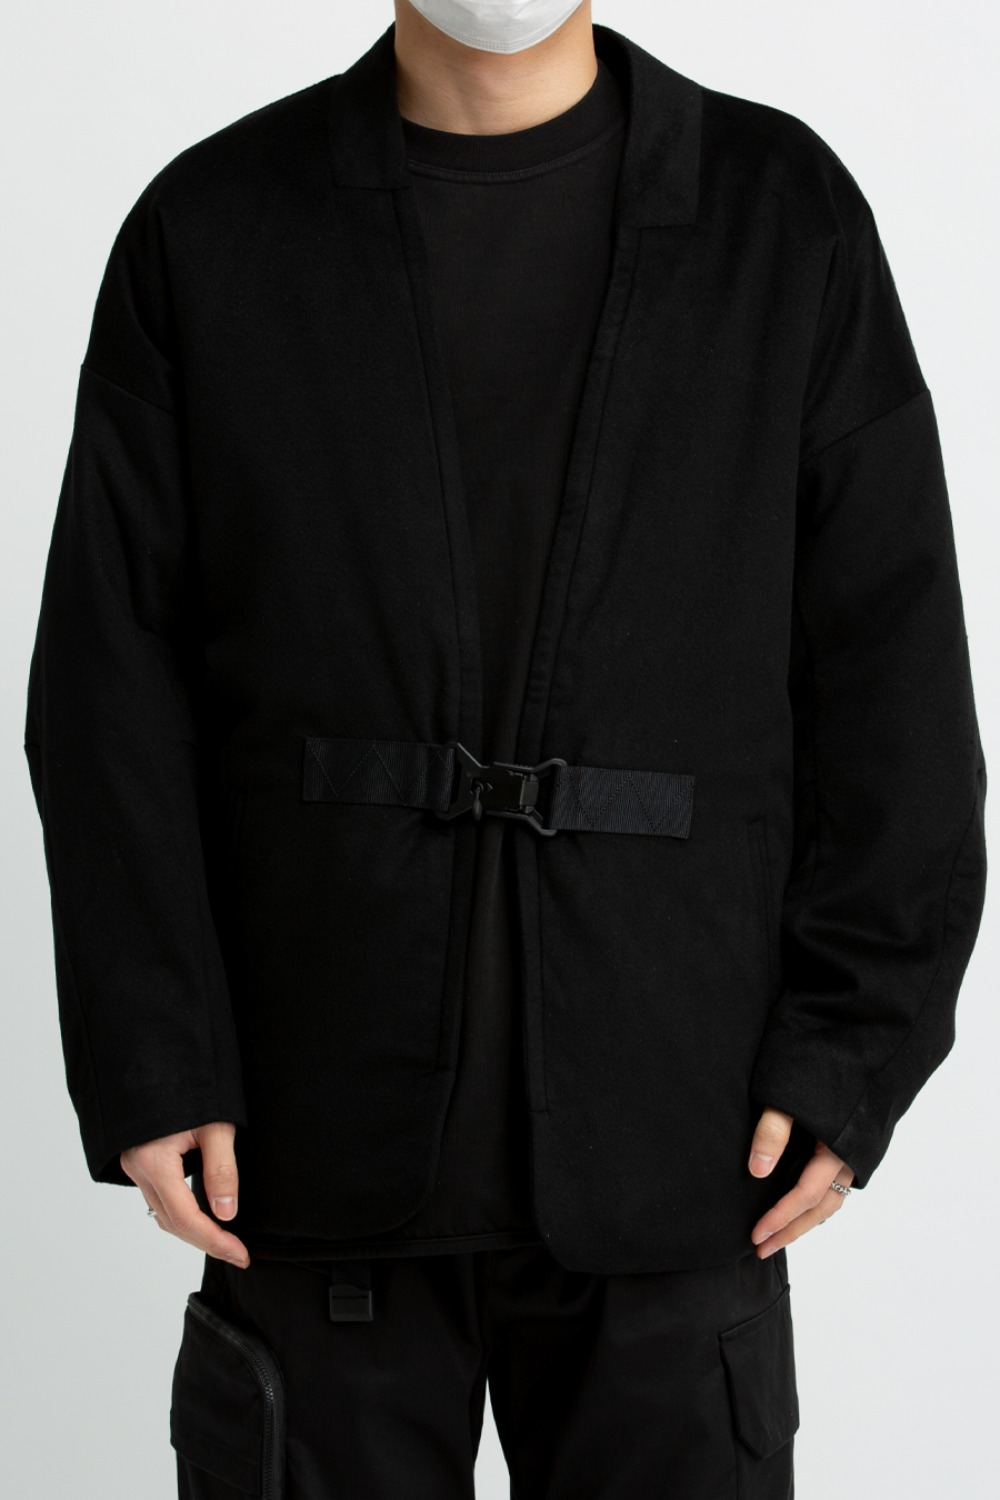 THERMAL DEFENDER COAT(ZYJDX21002) BLACK